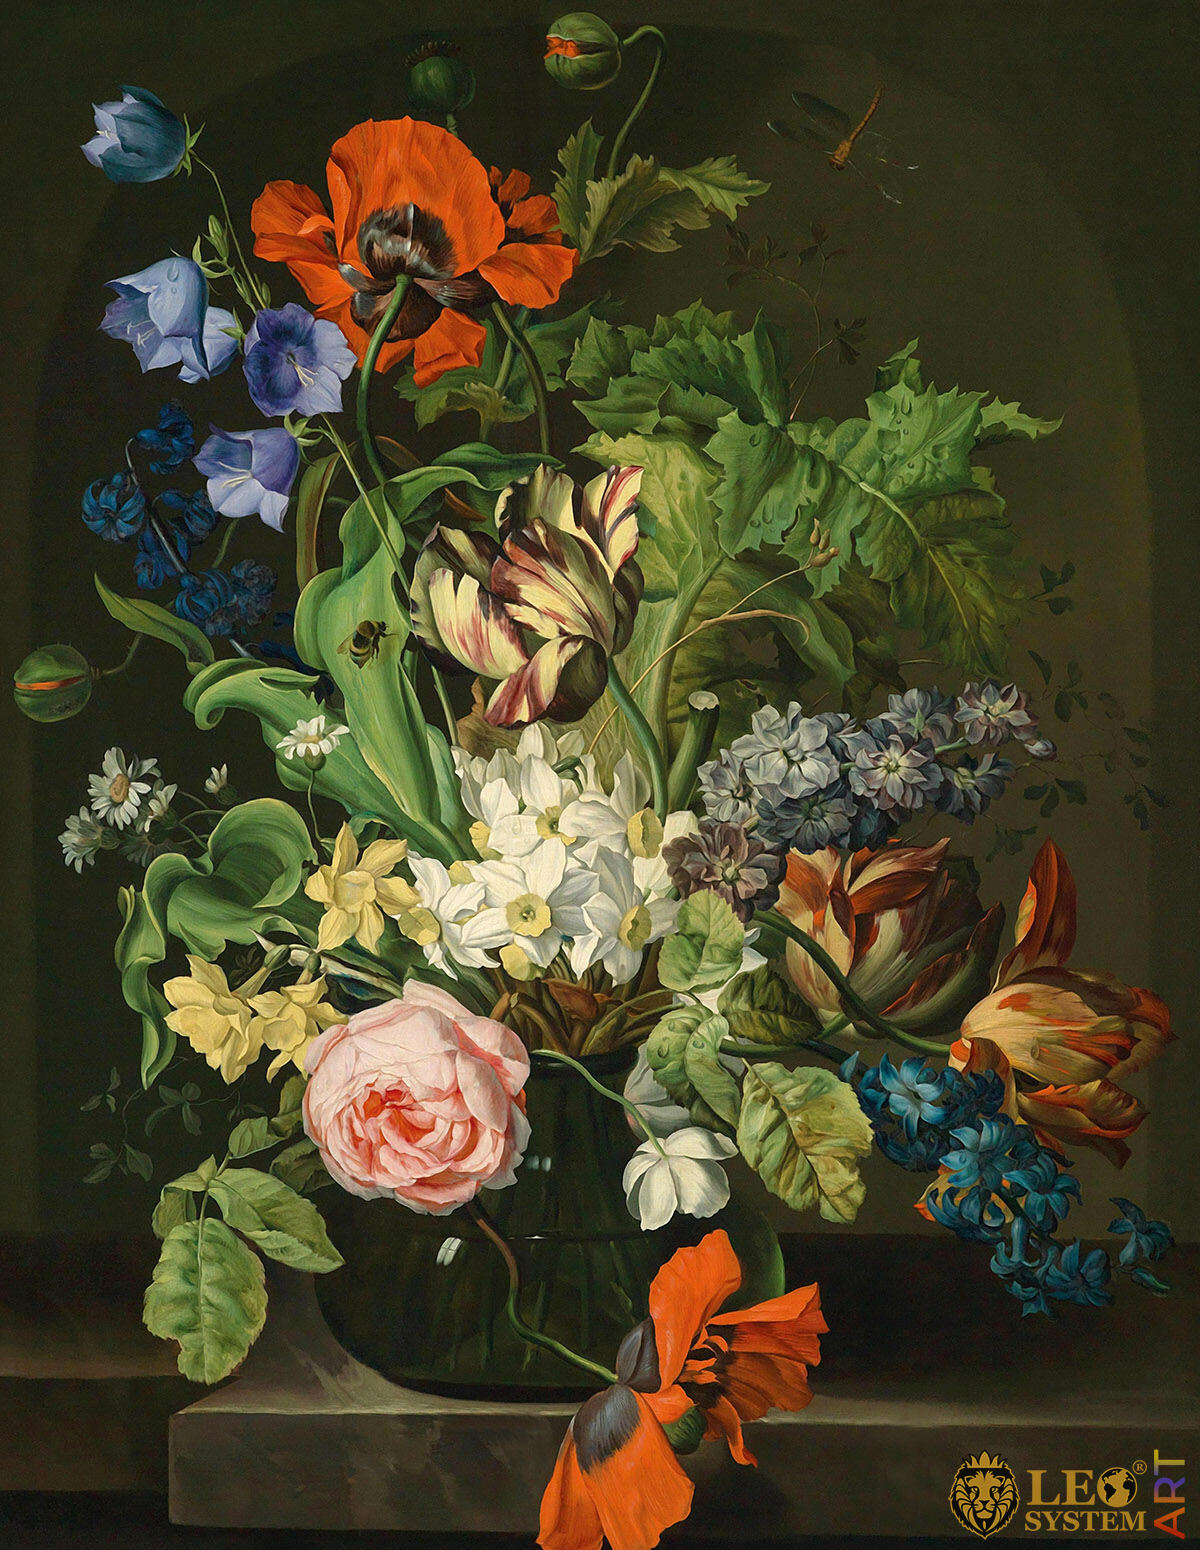 Oil painting with a lovely flower arrangement in a vase